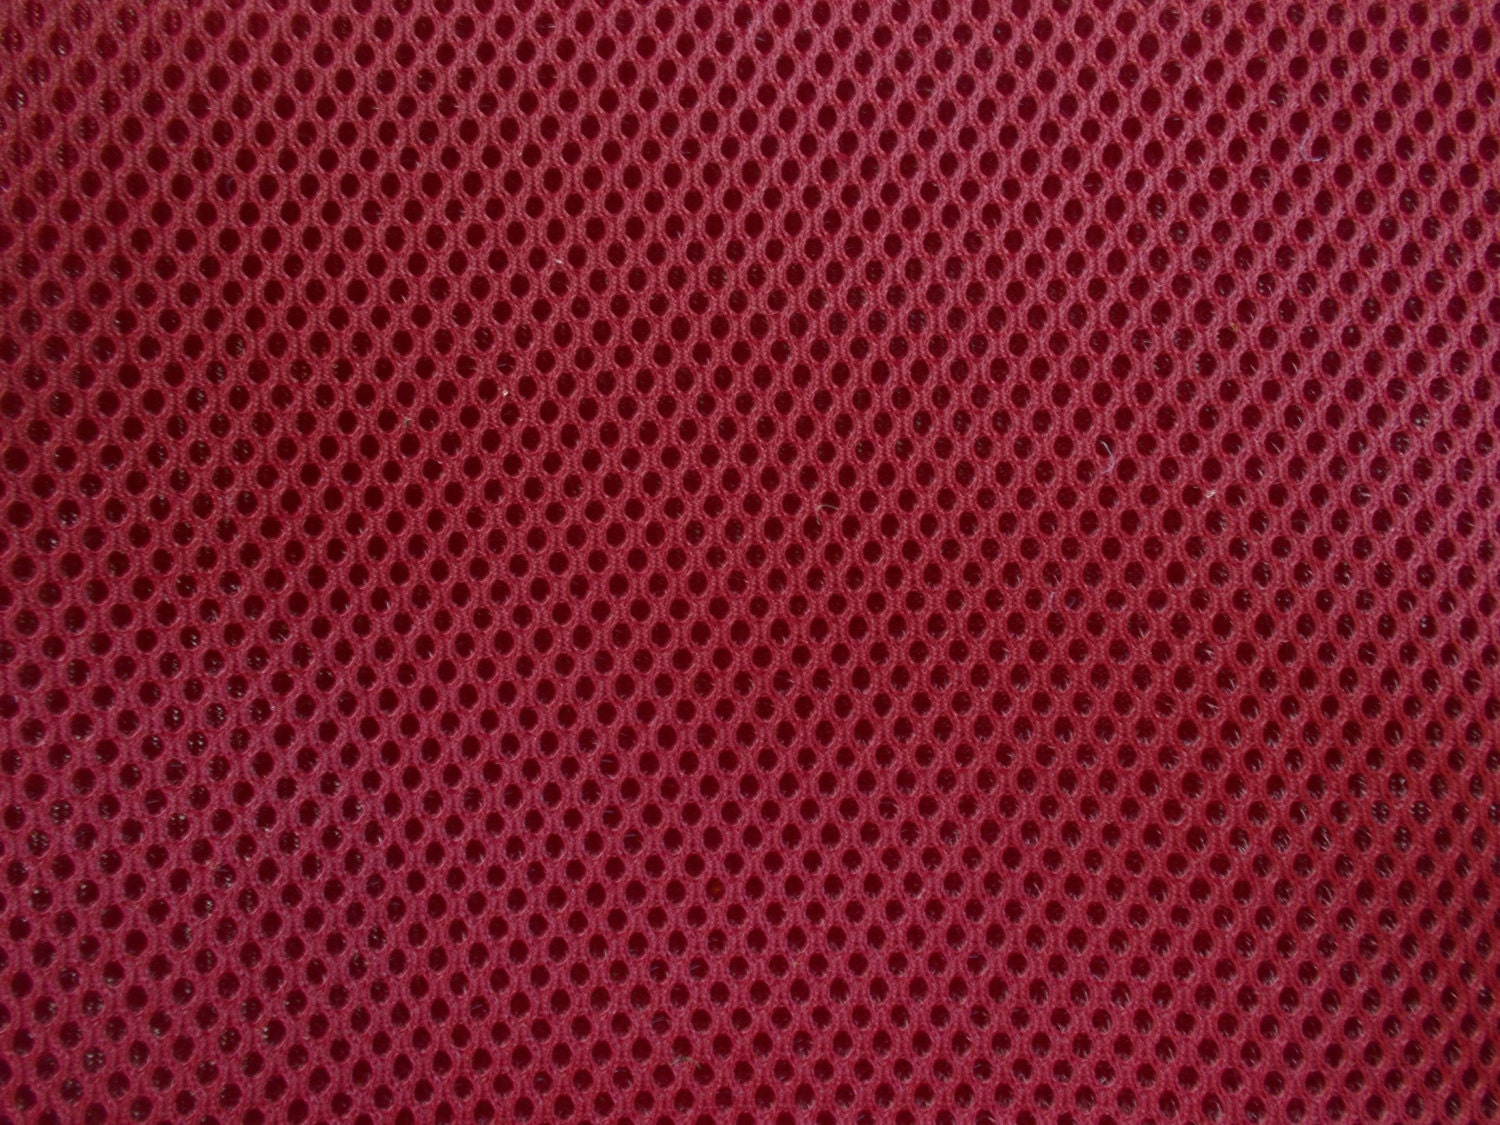 60 Wide Padded Foam Mesh Fabric Deep Cardinal Red Auto Upholstery Bags Shoes Backpacks Straps